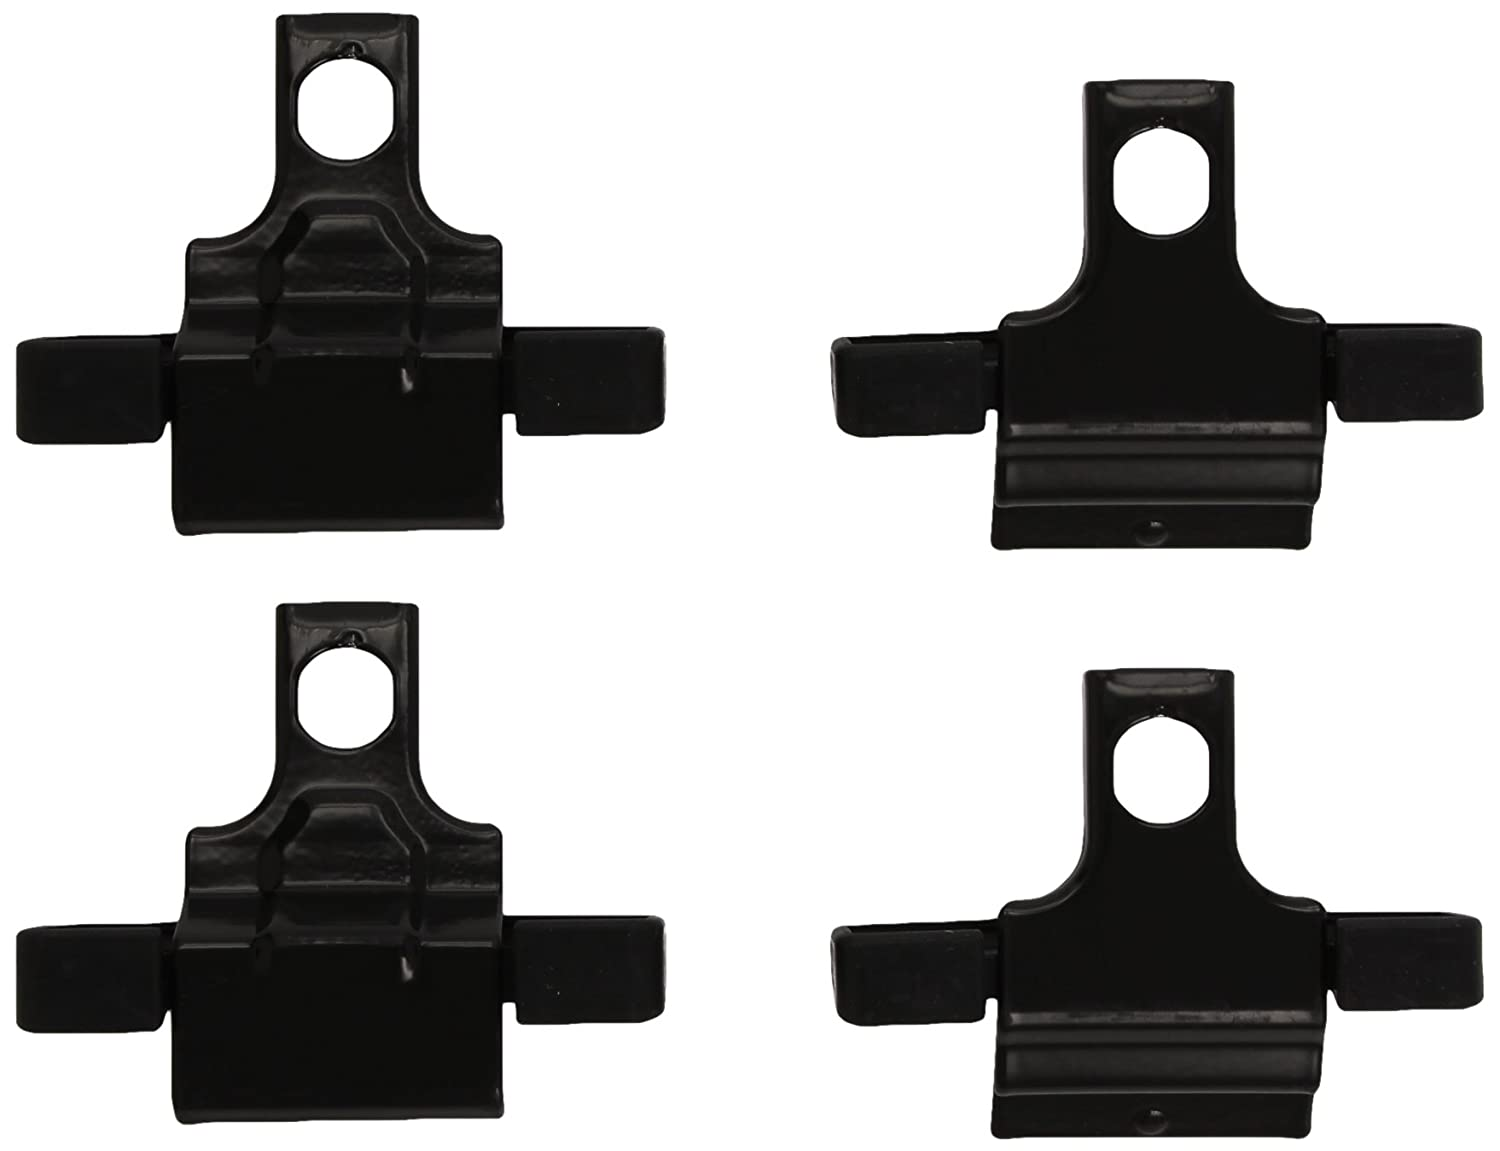 Thule 1467 - Kit Rapid System Thule Sweden AB 141467